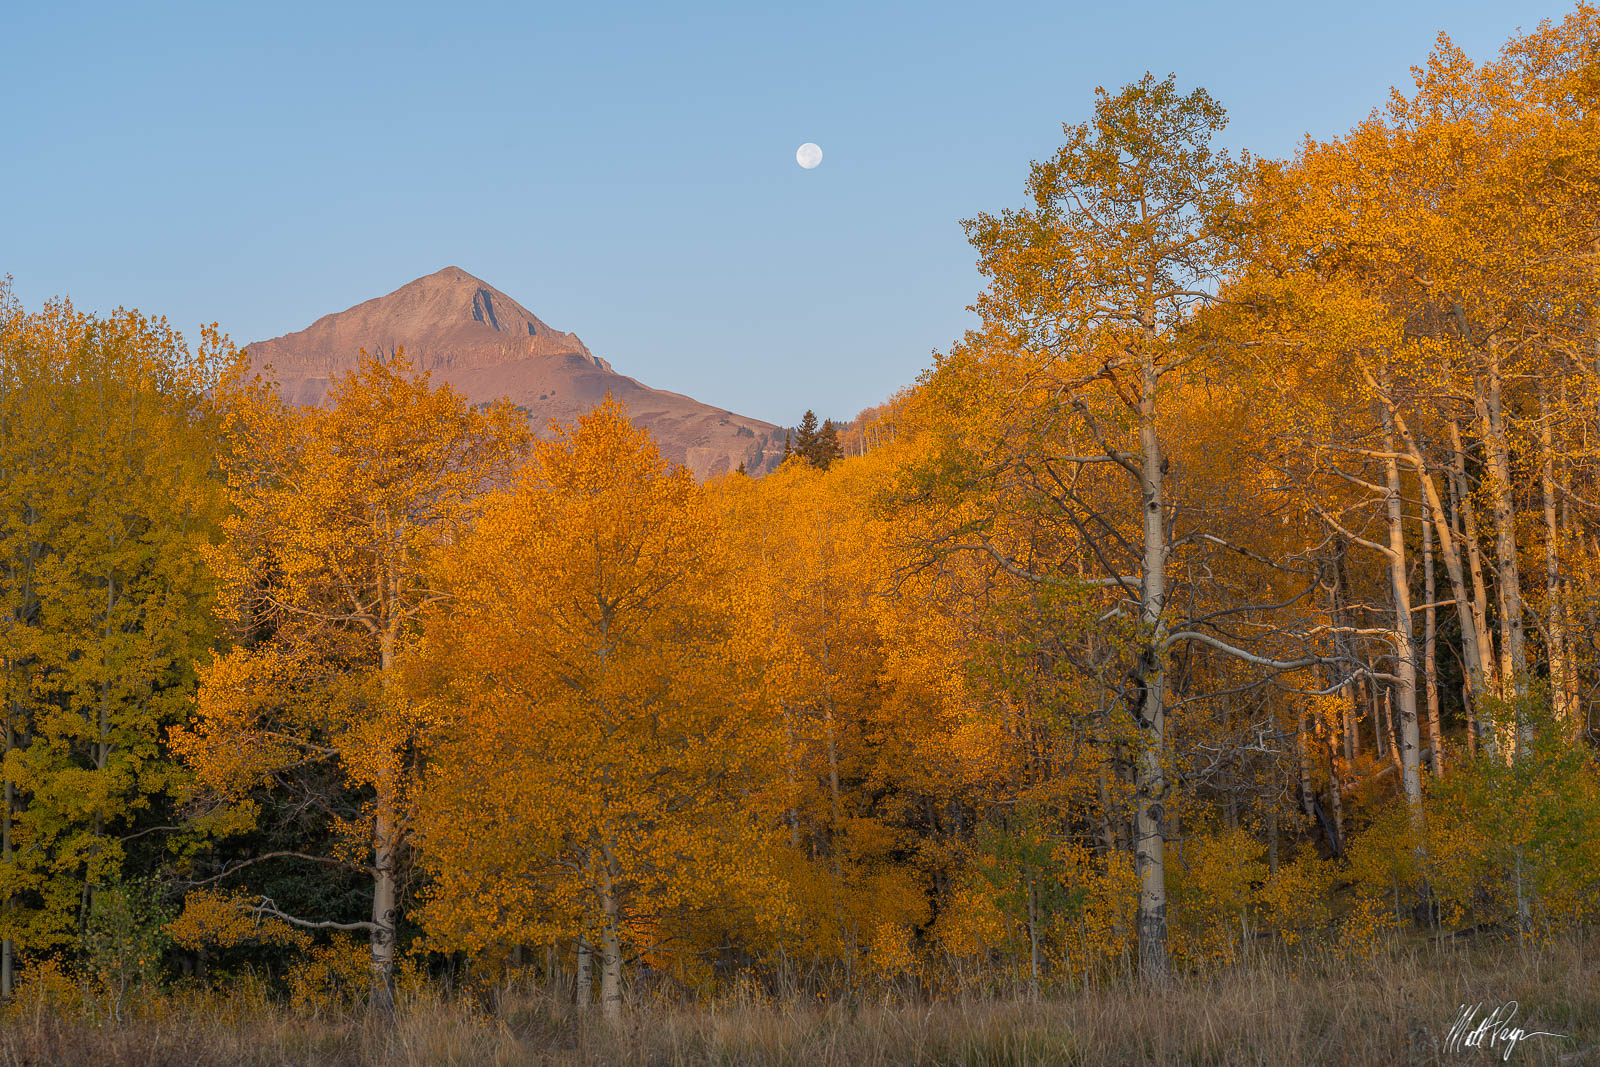 My friend Scott Bacon and I found this nice little scene at dawn while cruising around the mountains together in autumn, looking...